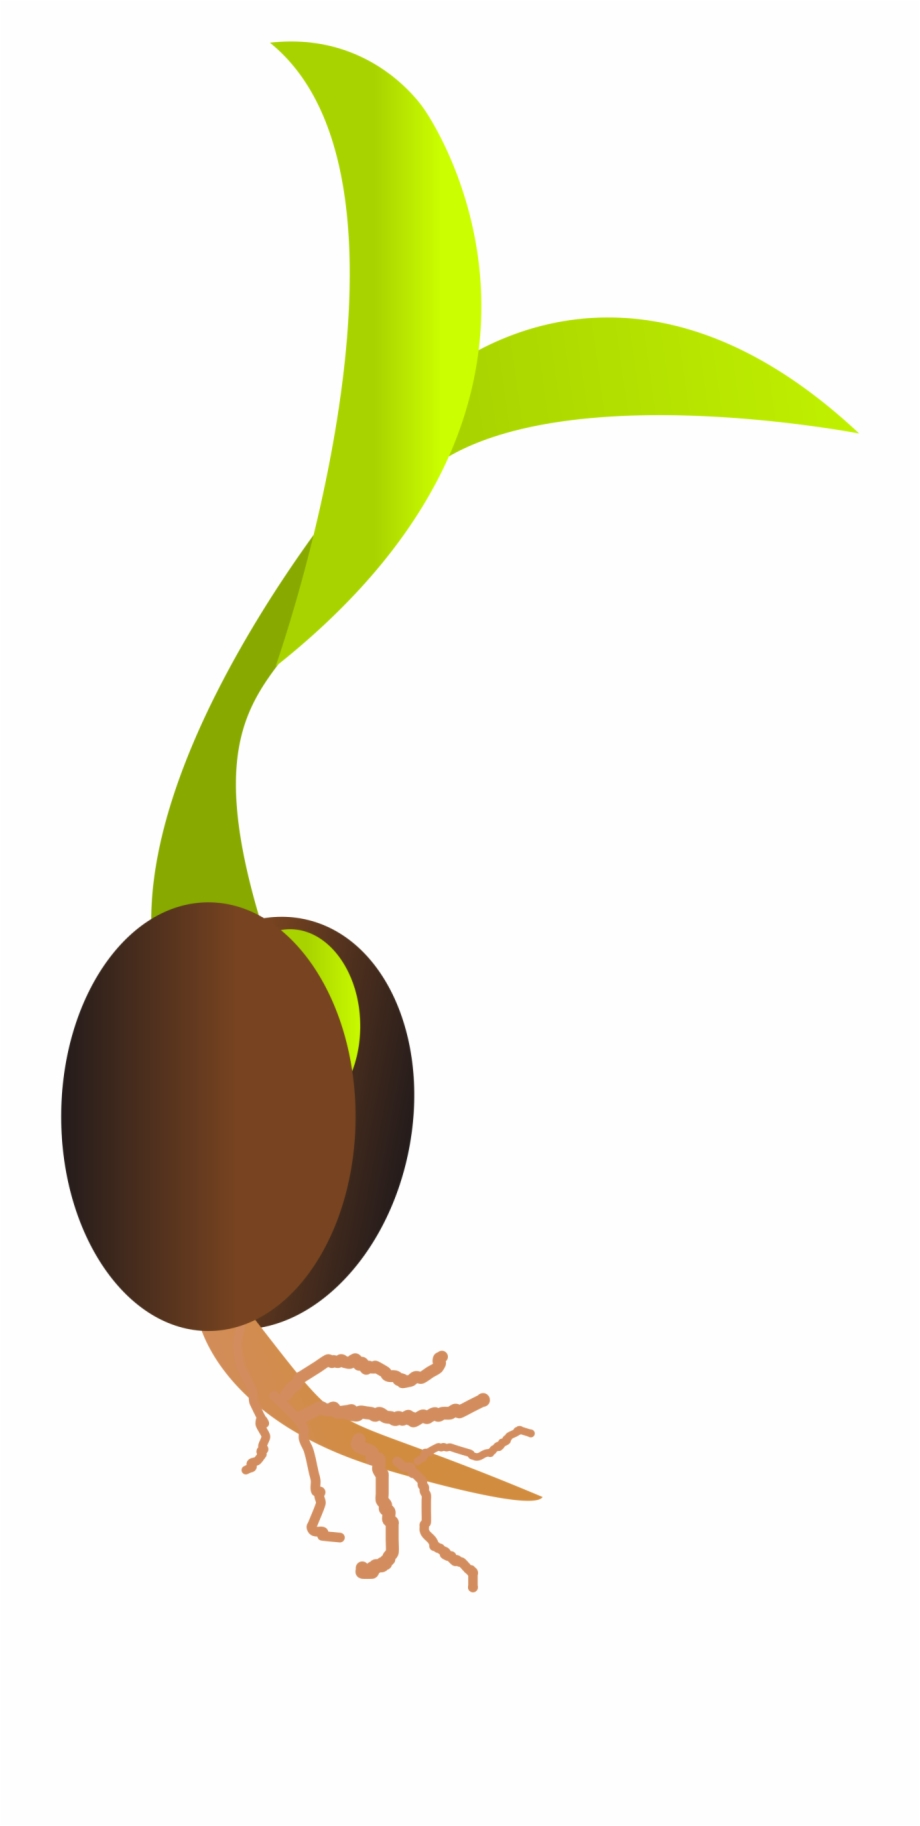 Seed Clipart One.